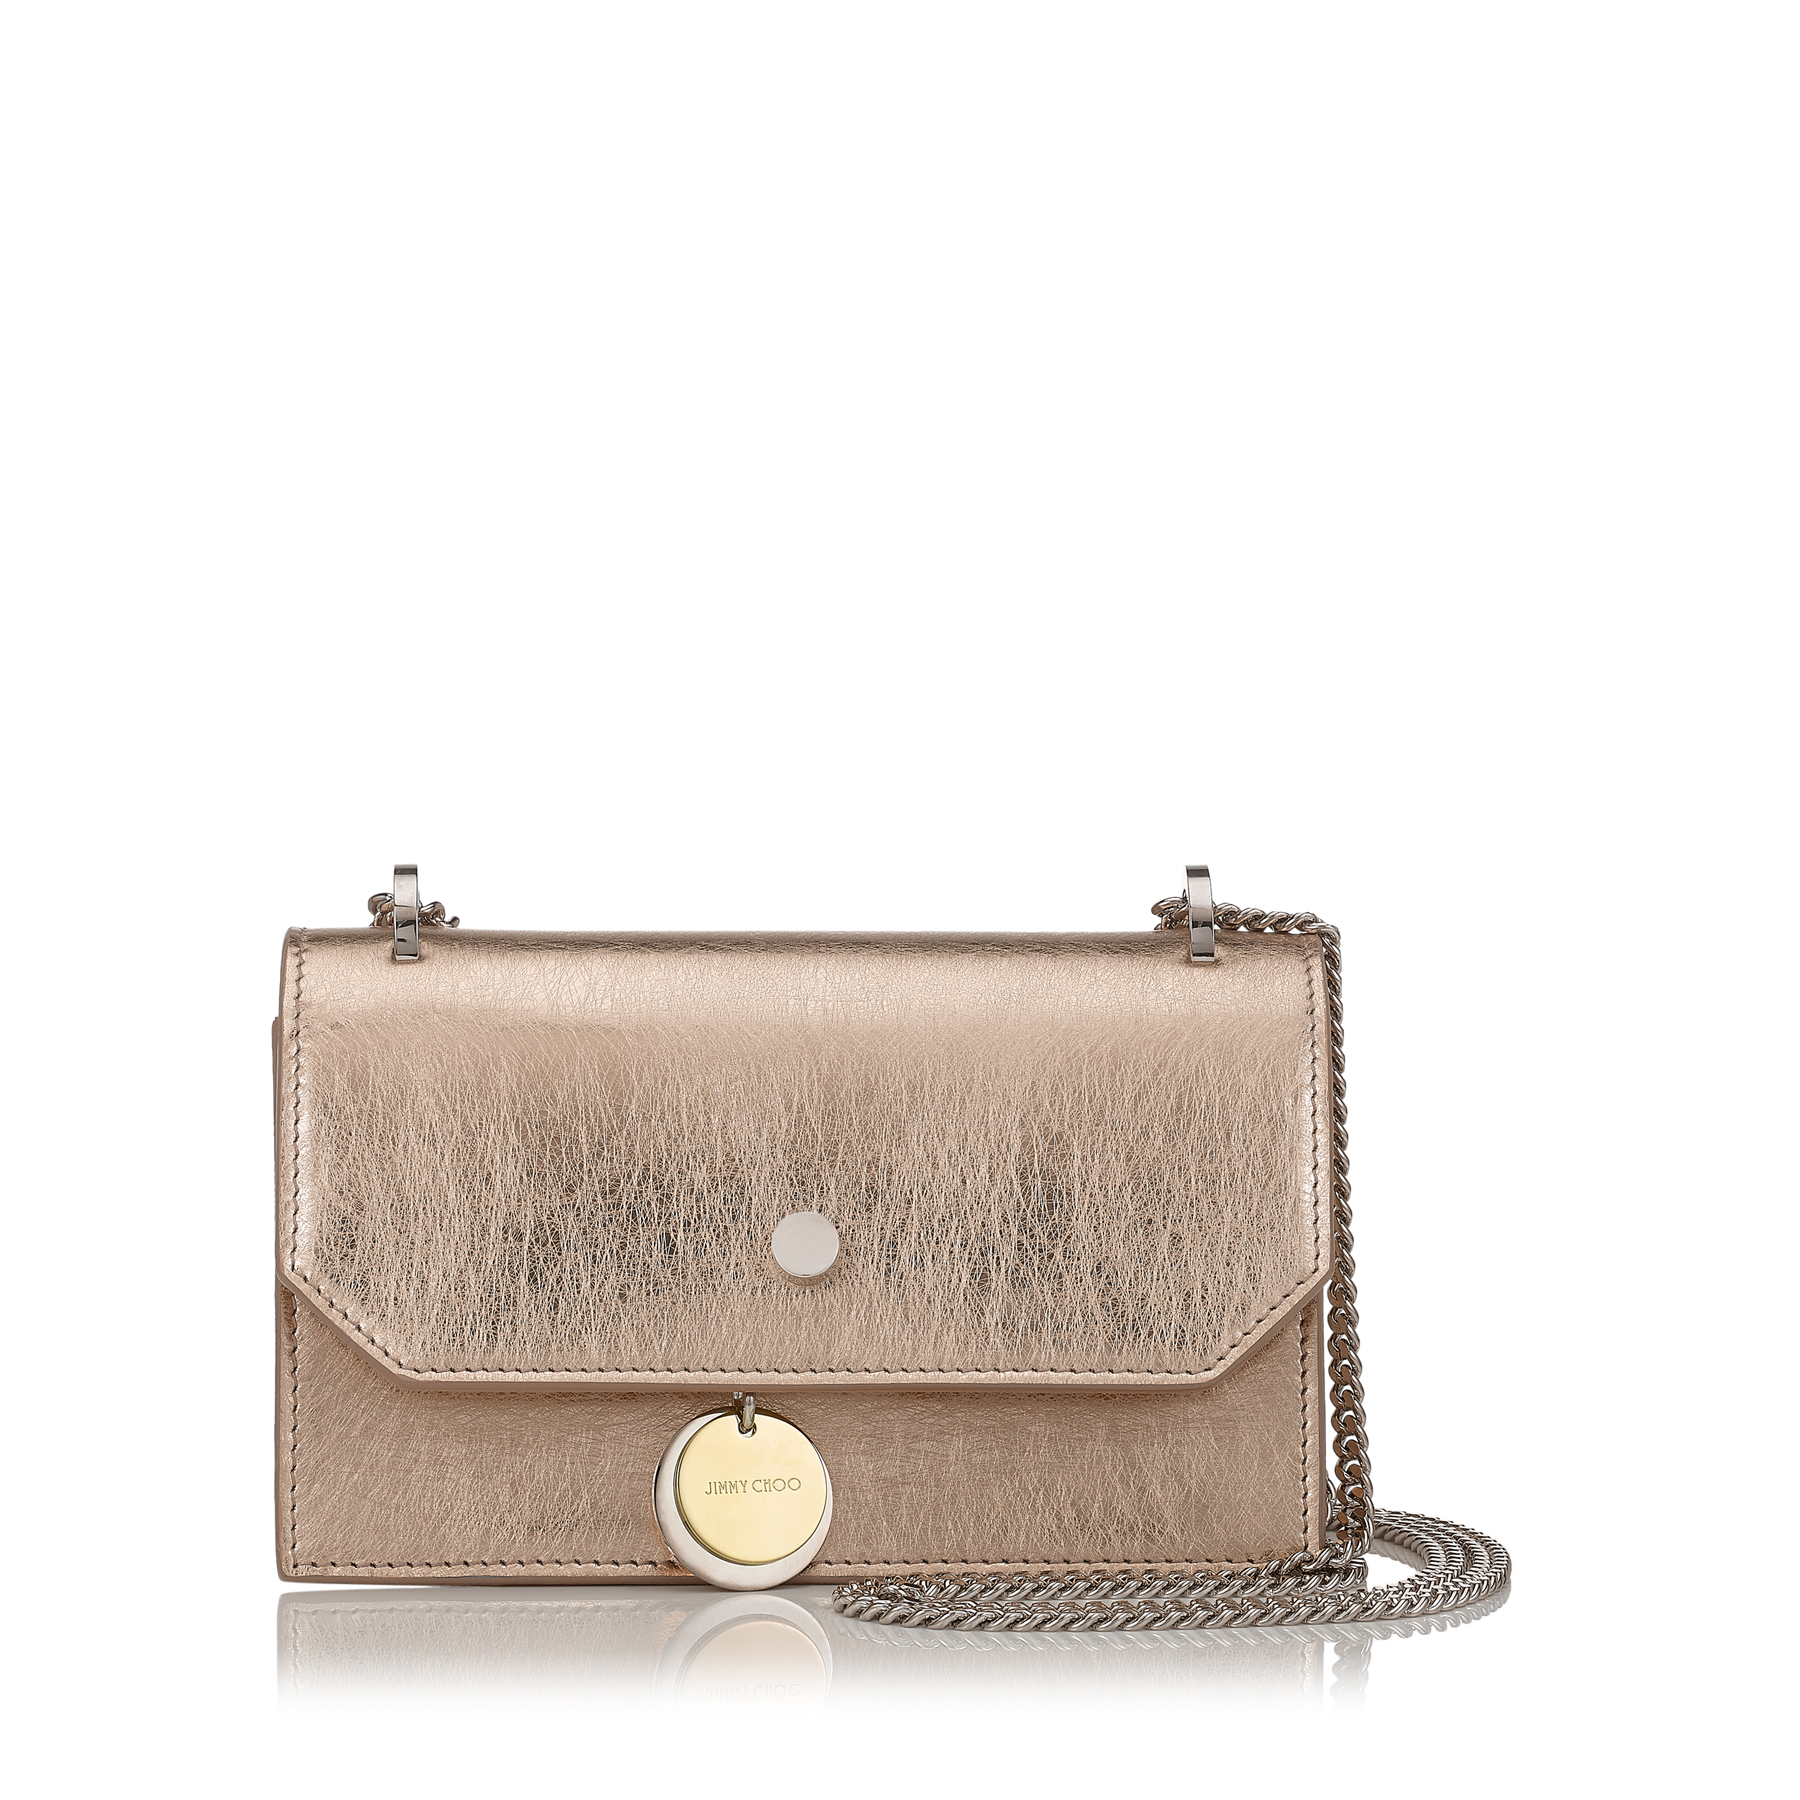 FINLEY Gold Etched Metallic Leather Cross Body Mini Bag